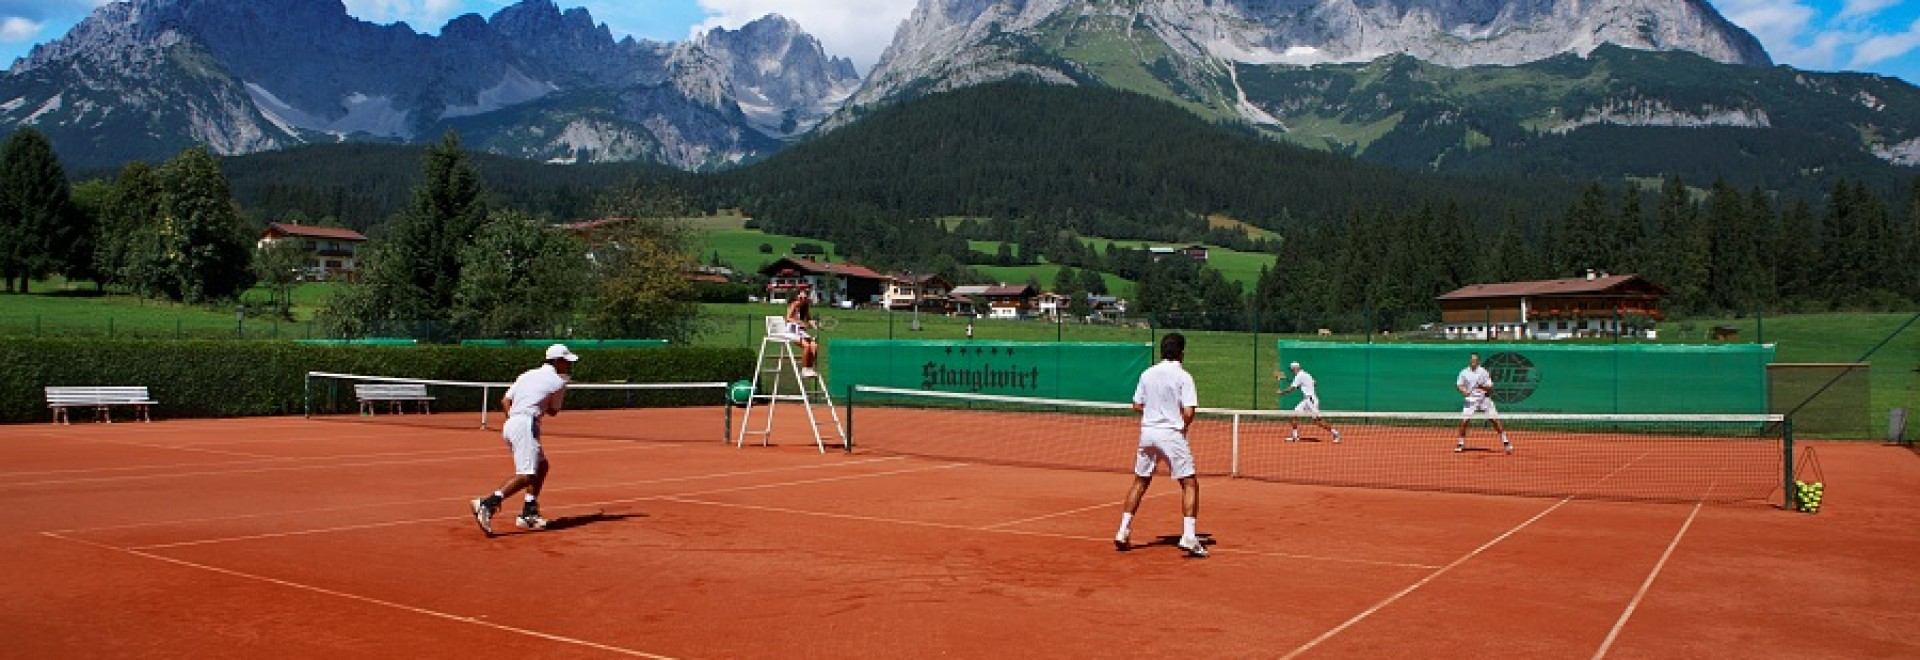 Tennis For Life - Bio Hotel Stanglwirt